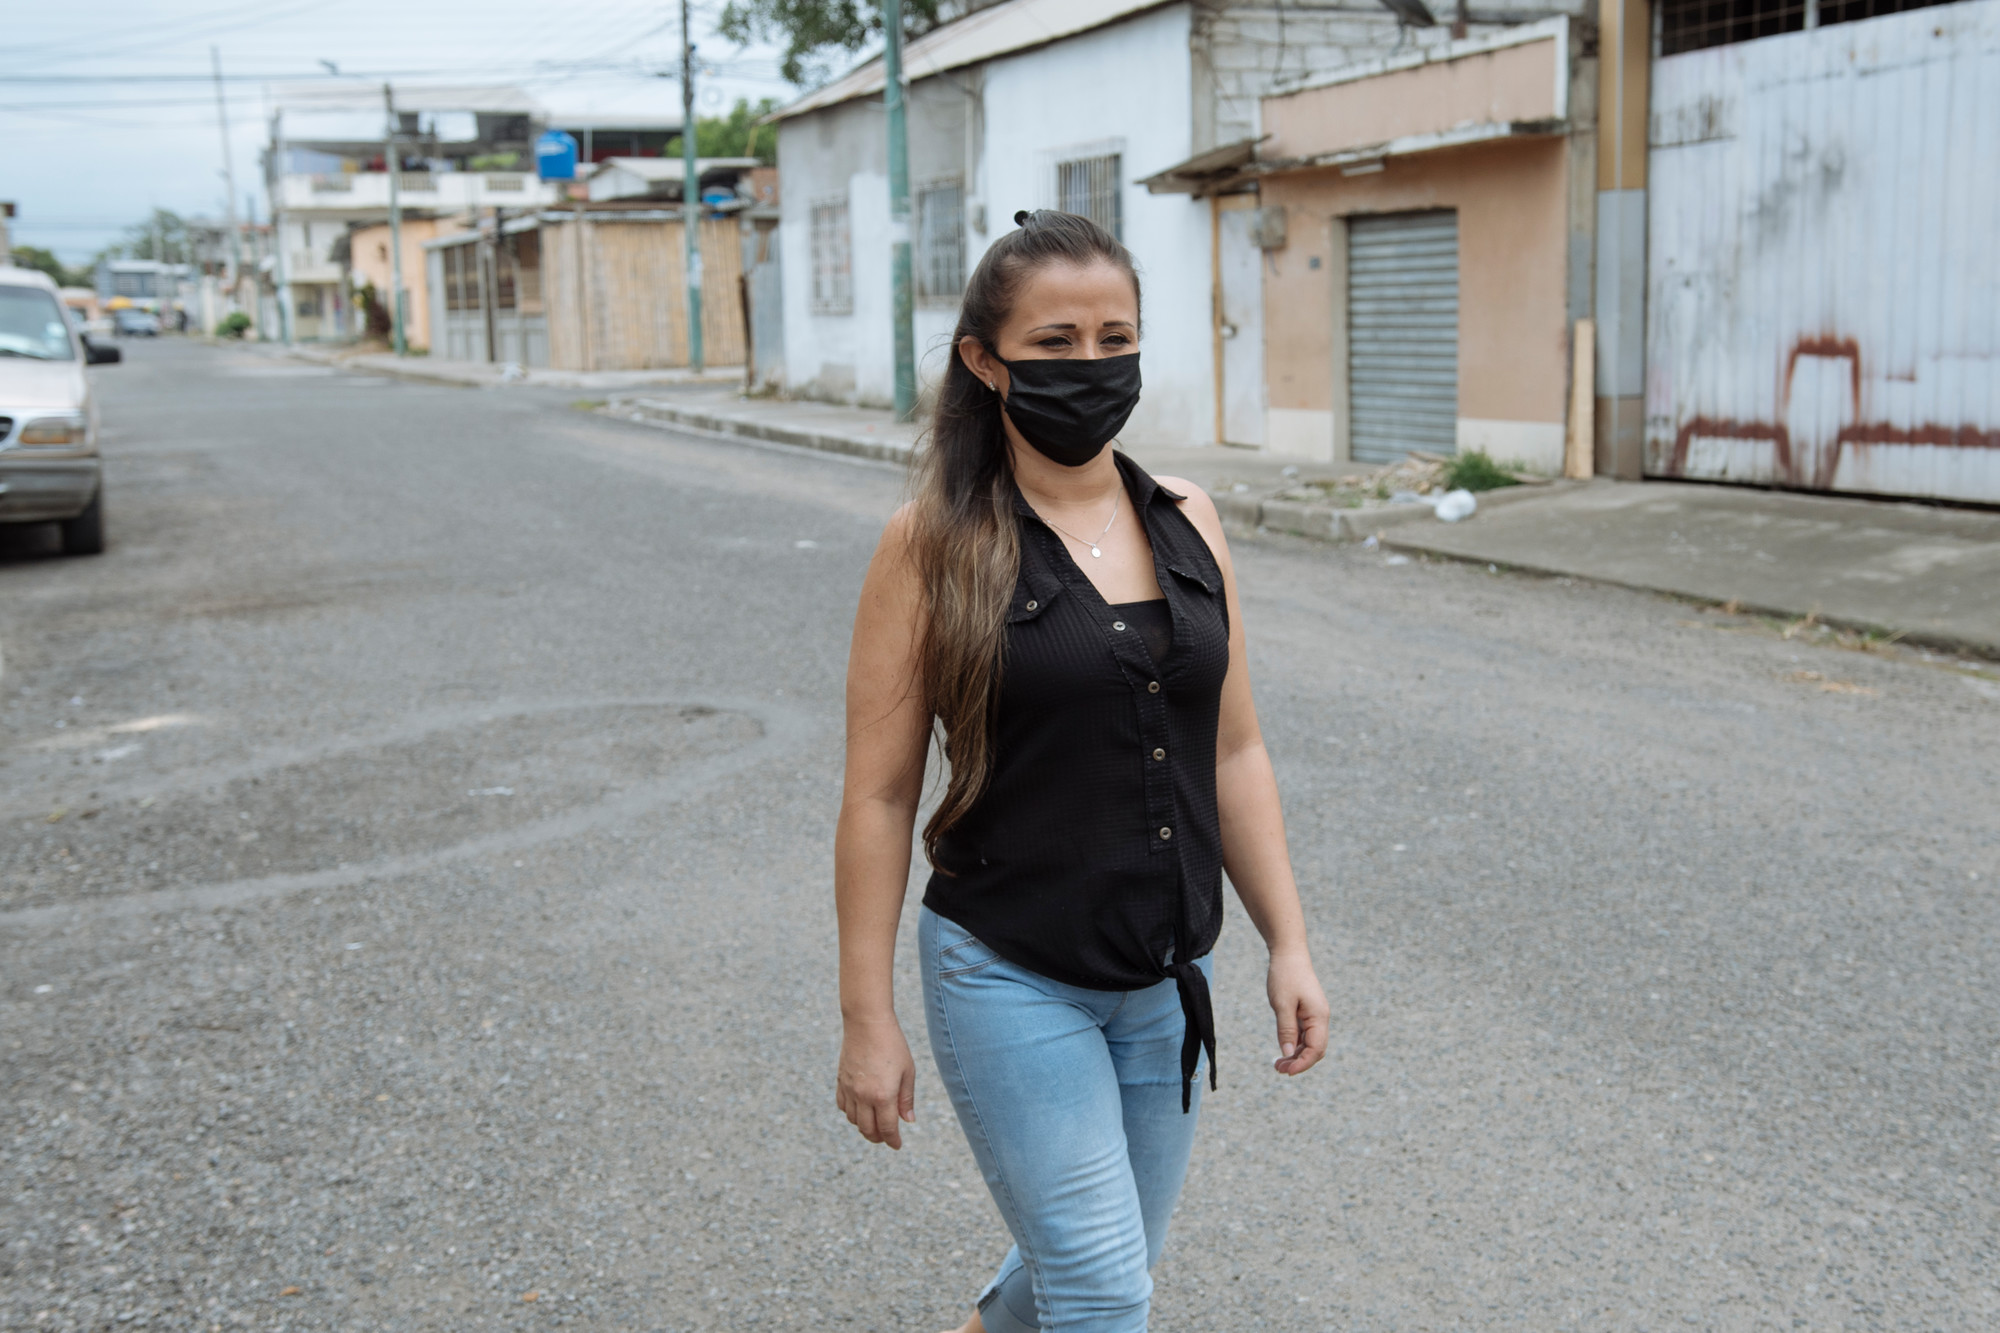 A woman in a face mask walks in an empty city street.